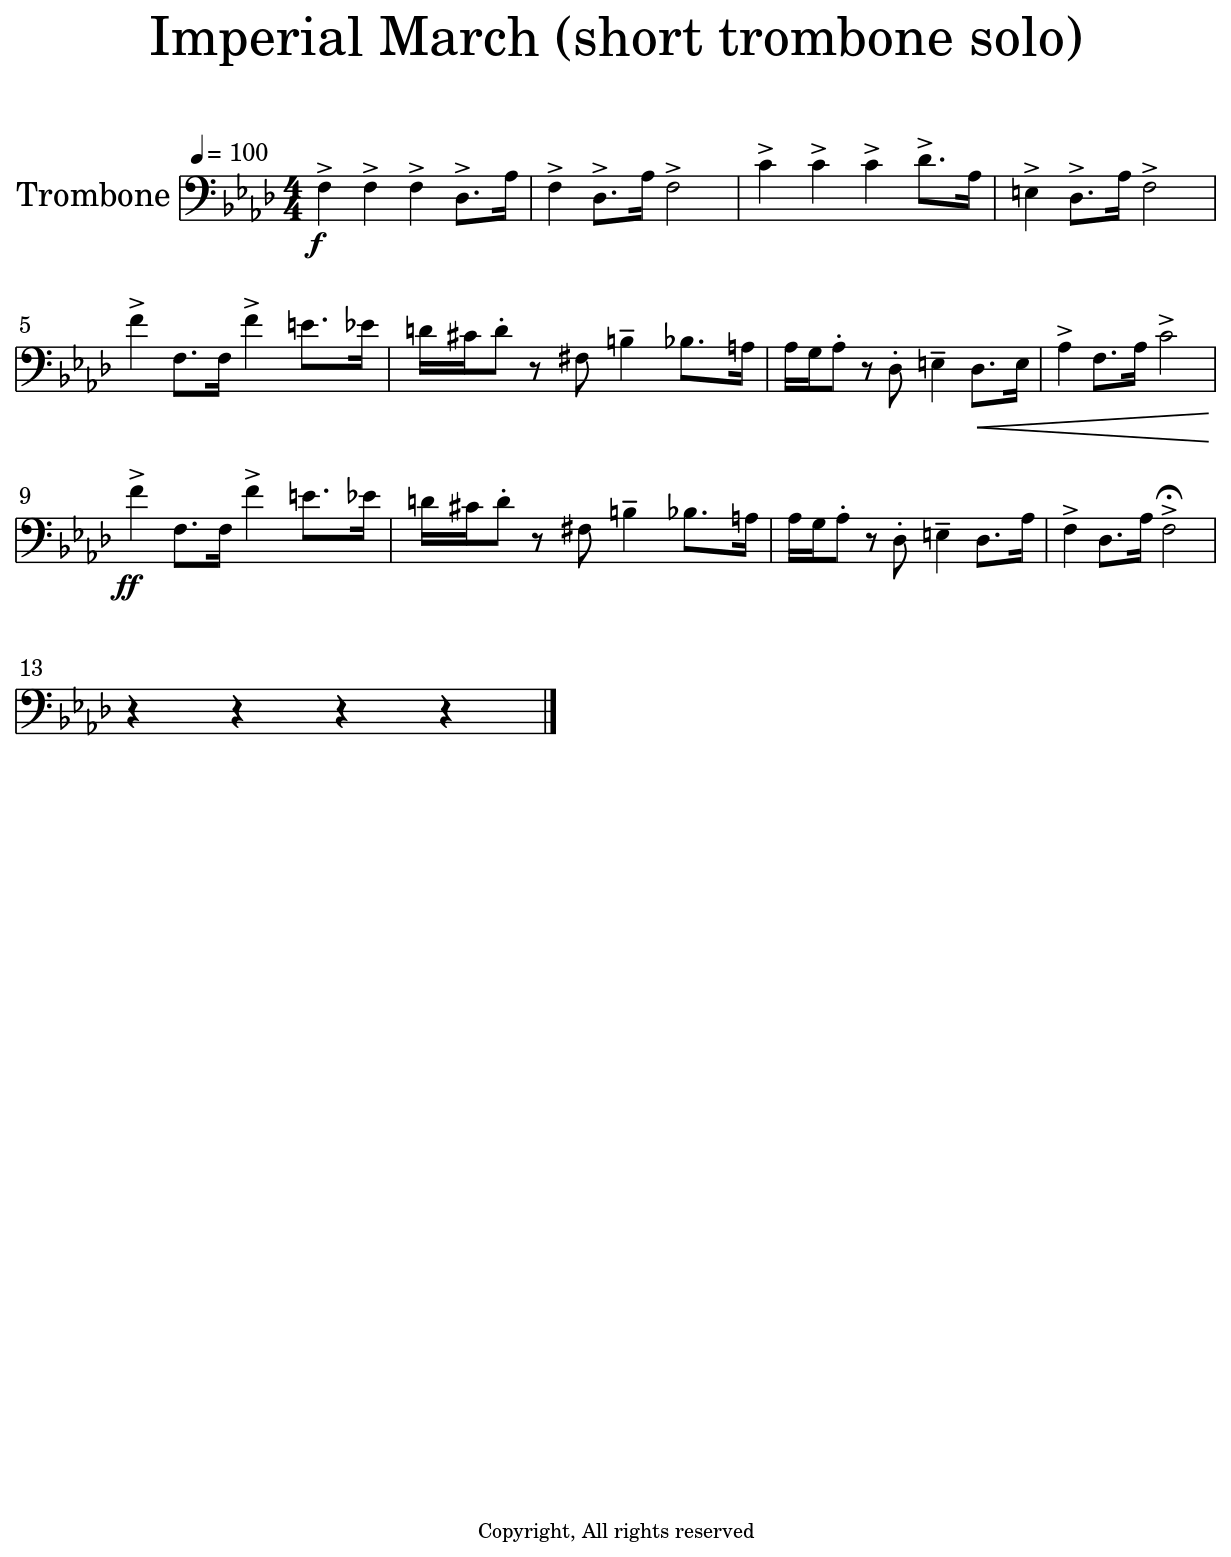 Imperial March Trombone Sheet Music : imperial, march, trombone, sheet, music, Imperial, March, (short, Trombone, Solo)